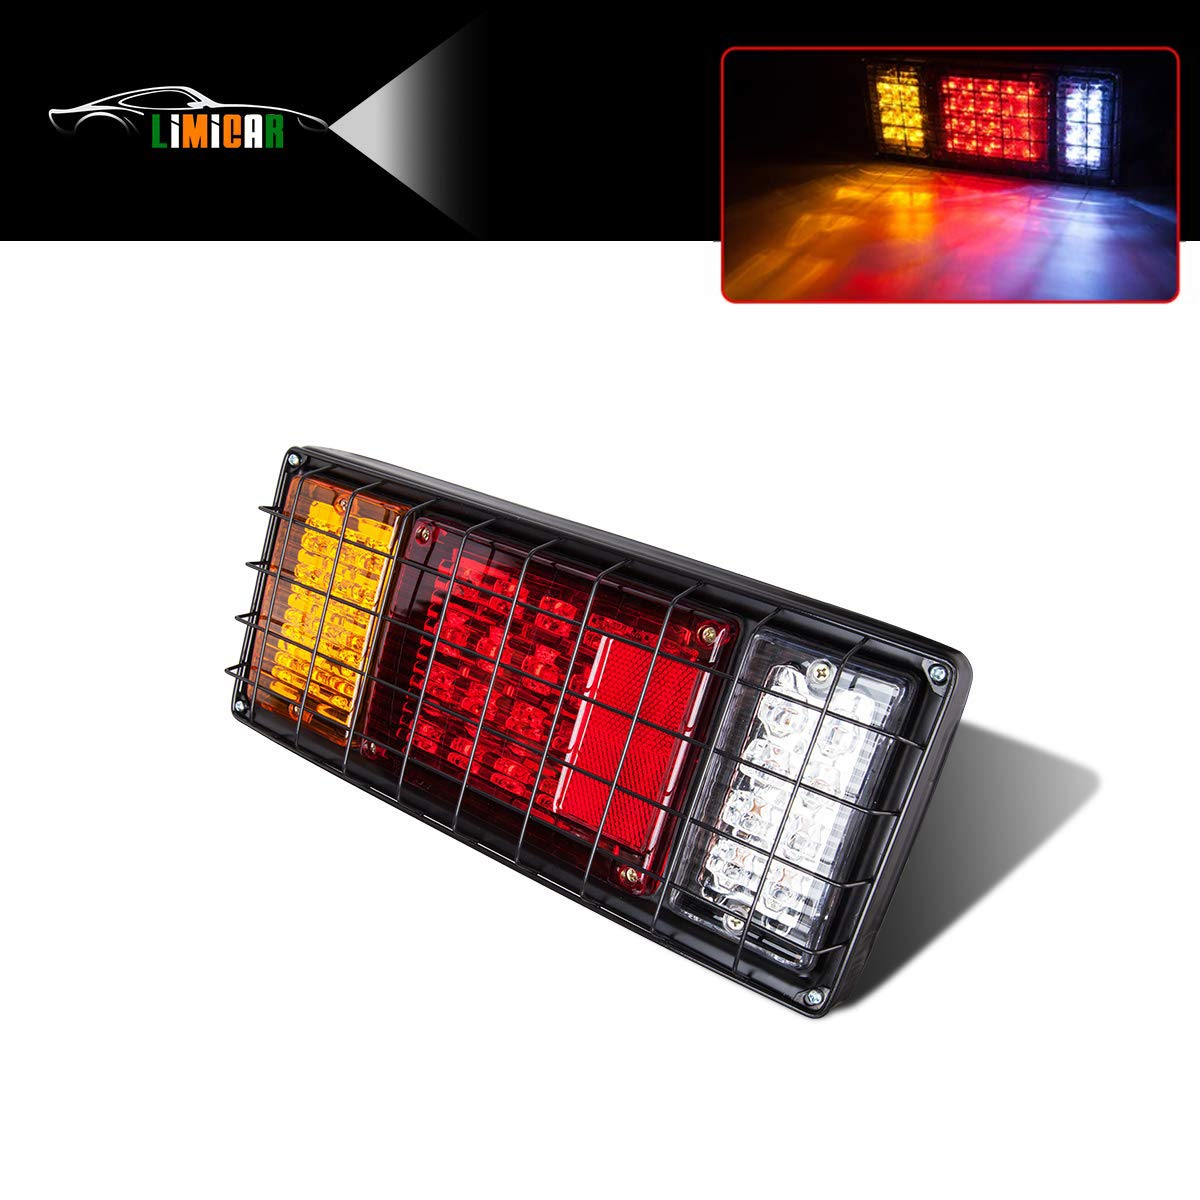 limicar 40 led trailer tail light bar waterproof turn signal brake reverse running lights with iron net protection left side for truck boat trailer trailer light placement yitamotor square red trailer lights